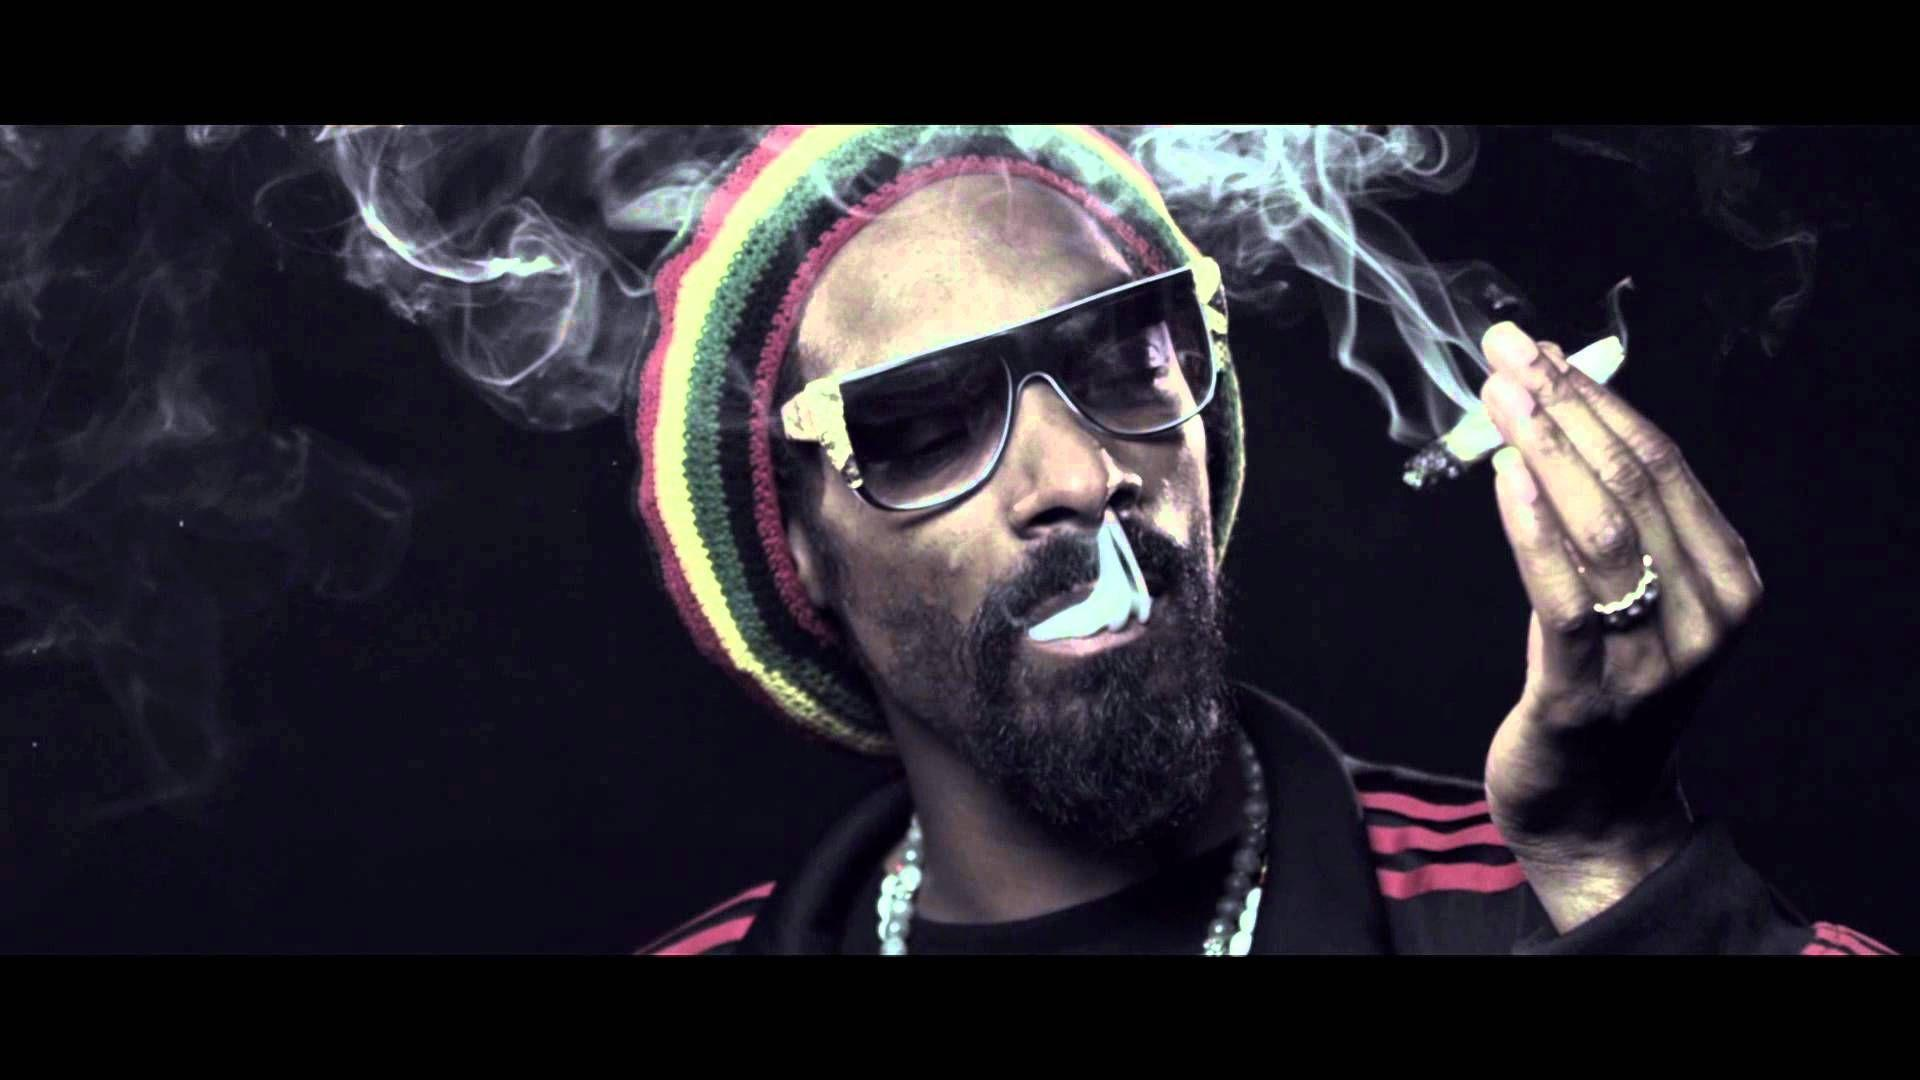 Snoop Dogg Weed Wallpapers - Top Free Snoop Dogg Weed Backgrounds ...